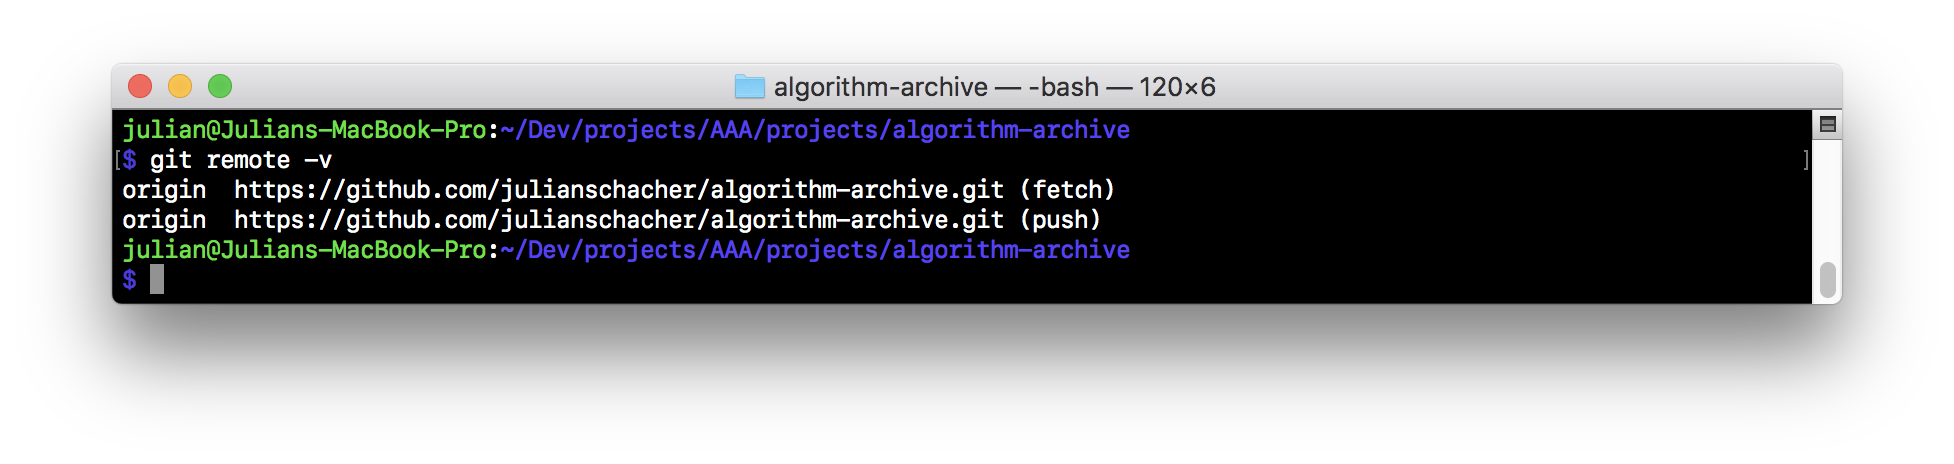 algorithm-archive local git remote without upstream